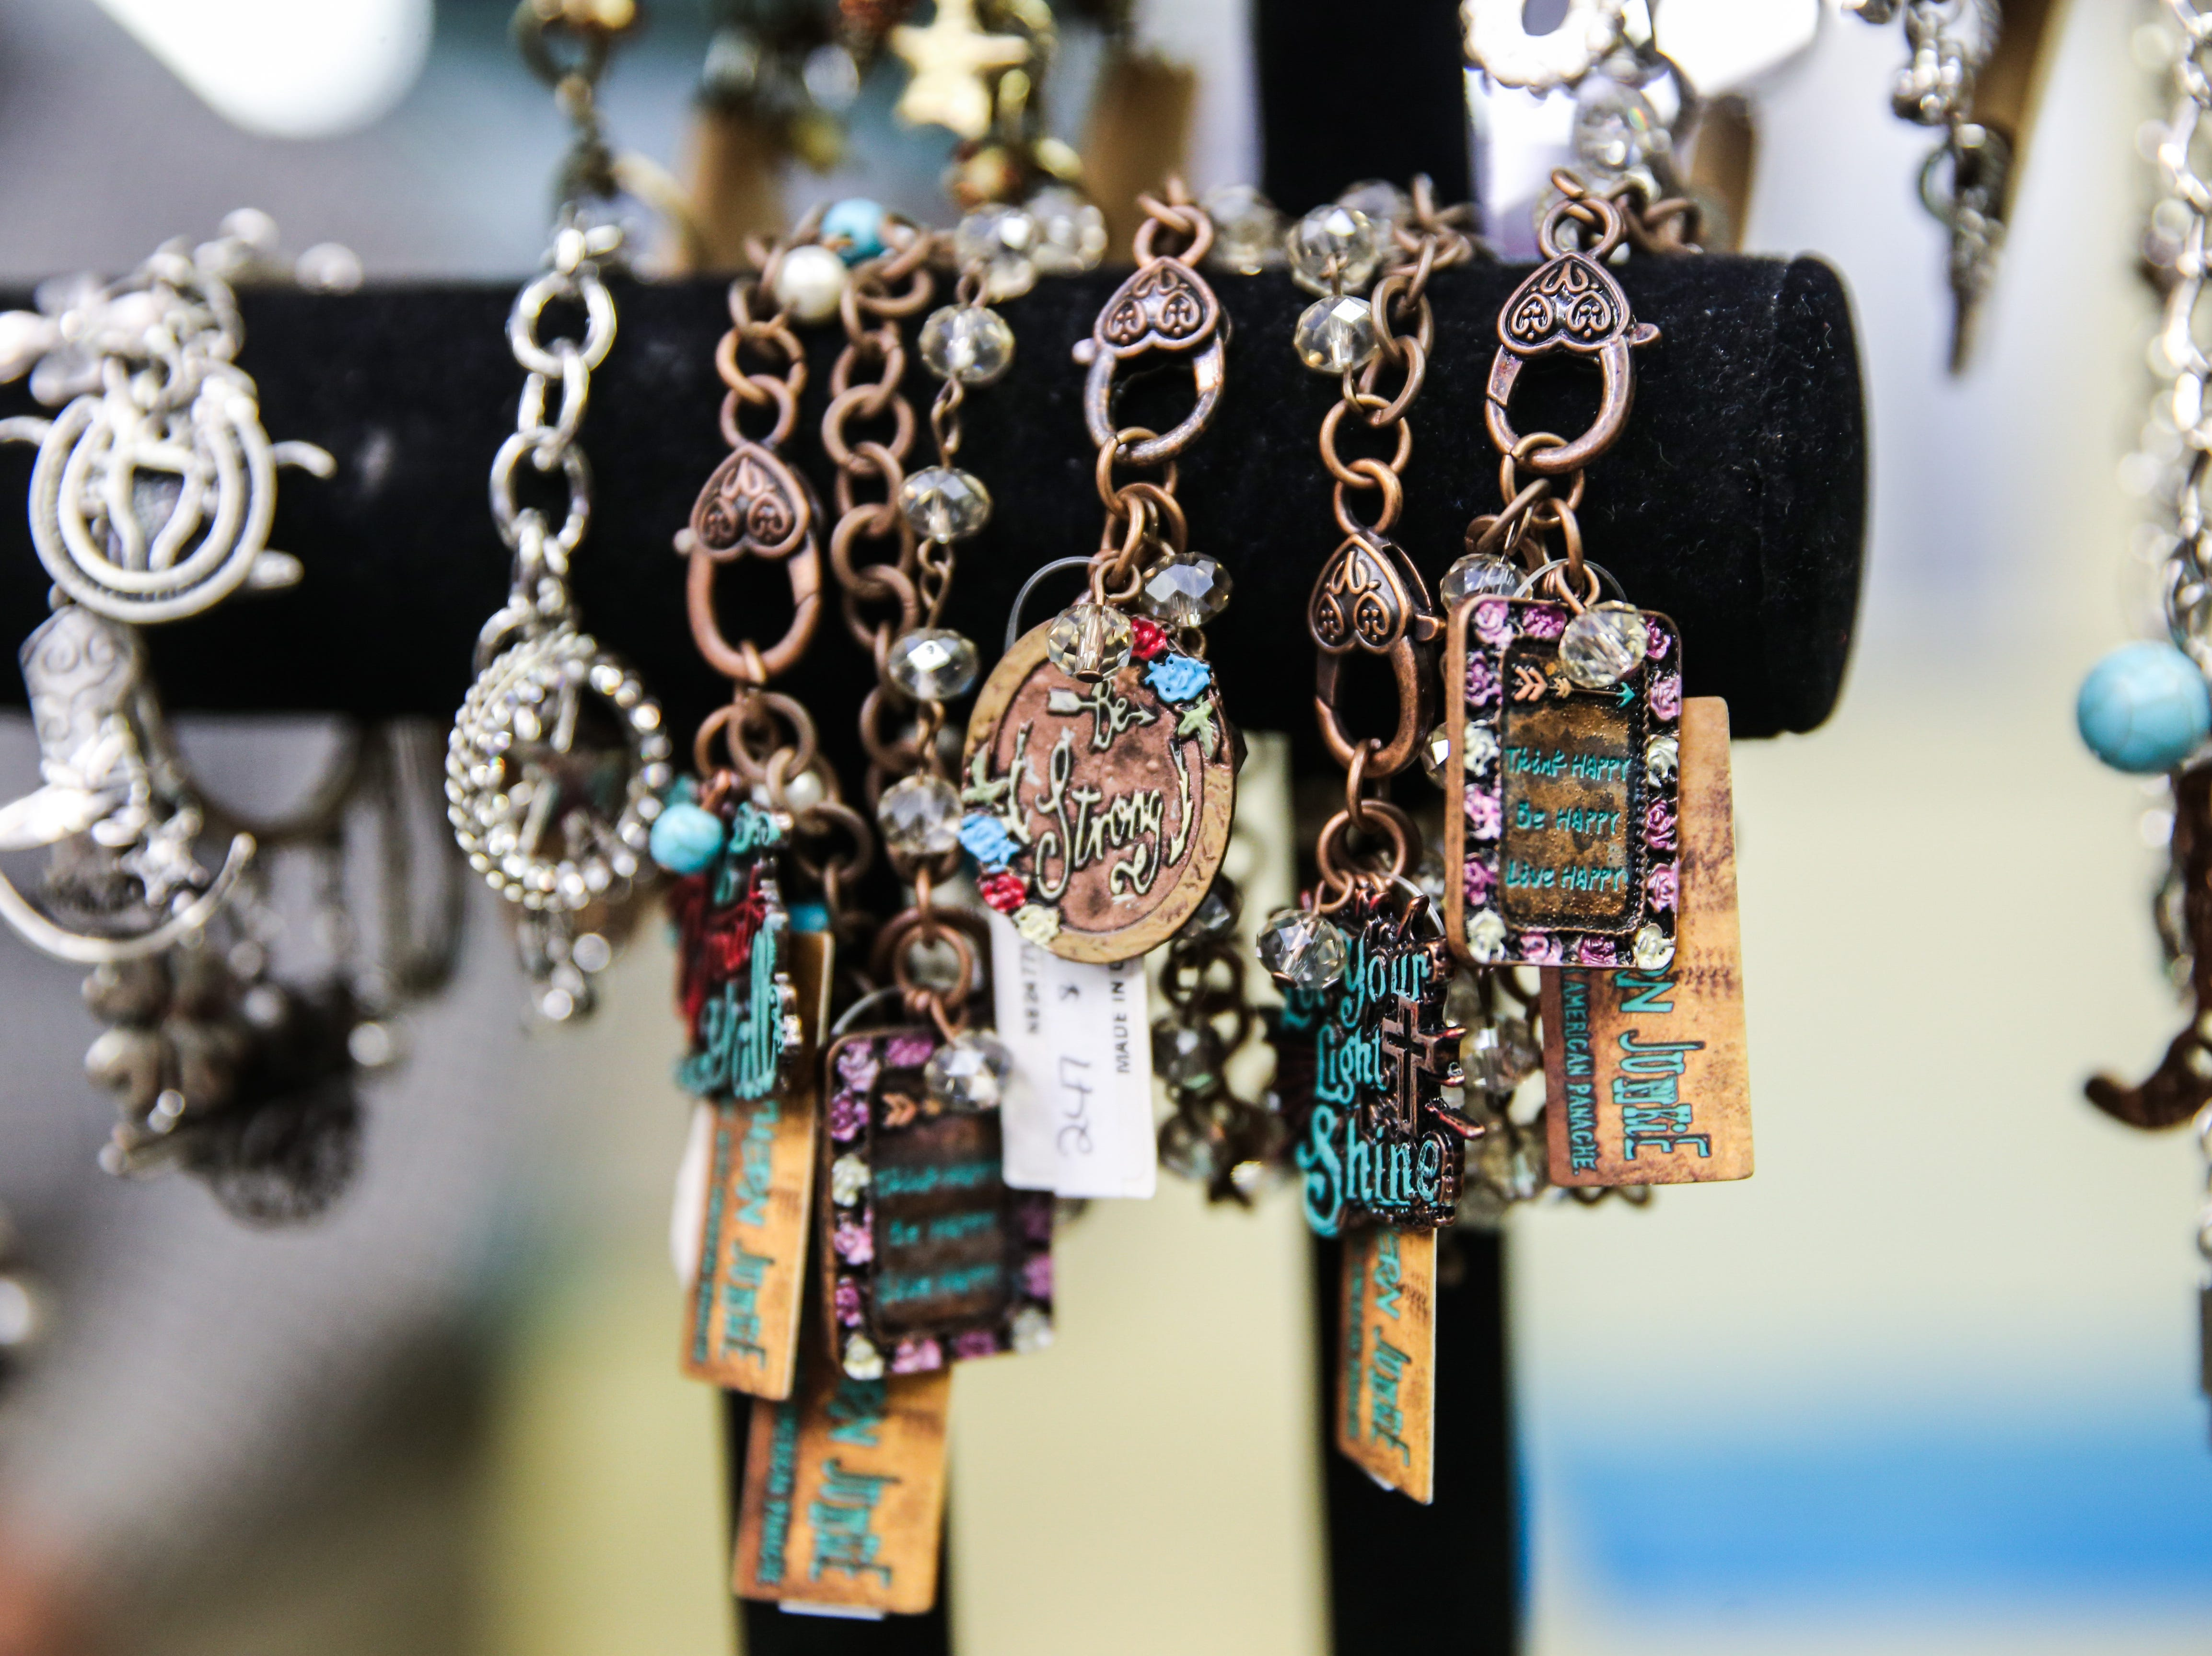 Jewelry on display at Serenity's Trading, 8 E. ConchoAve.